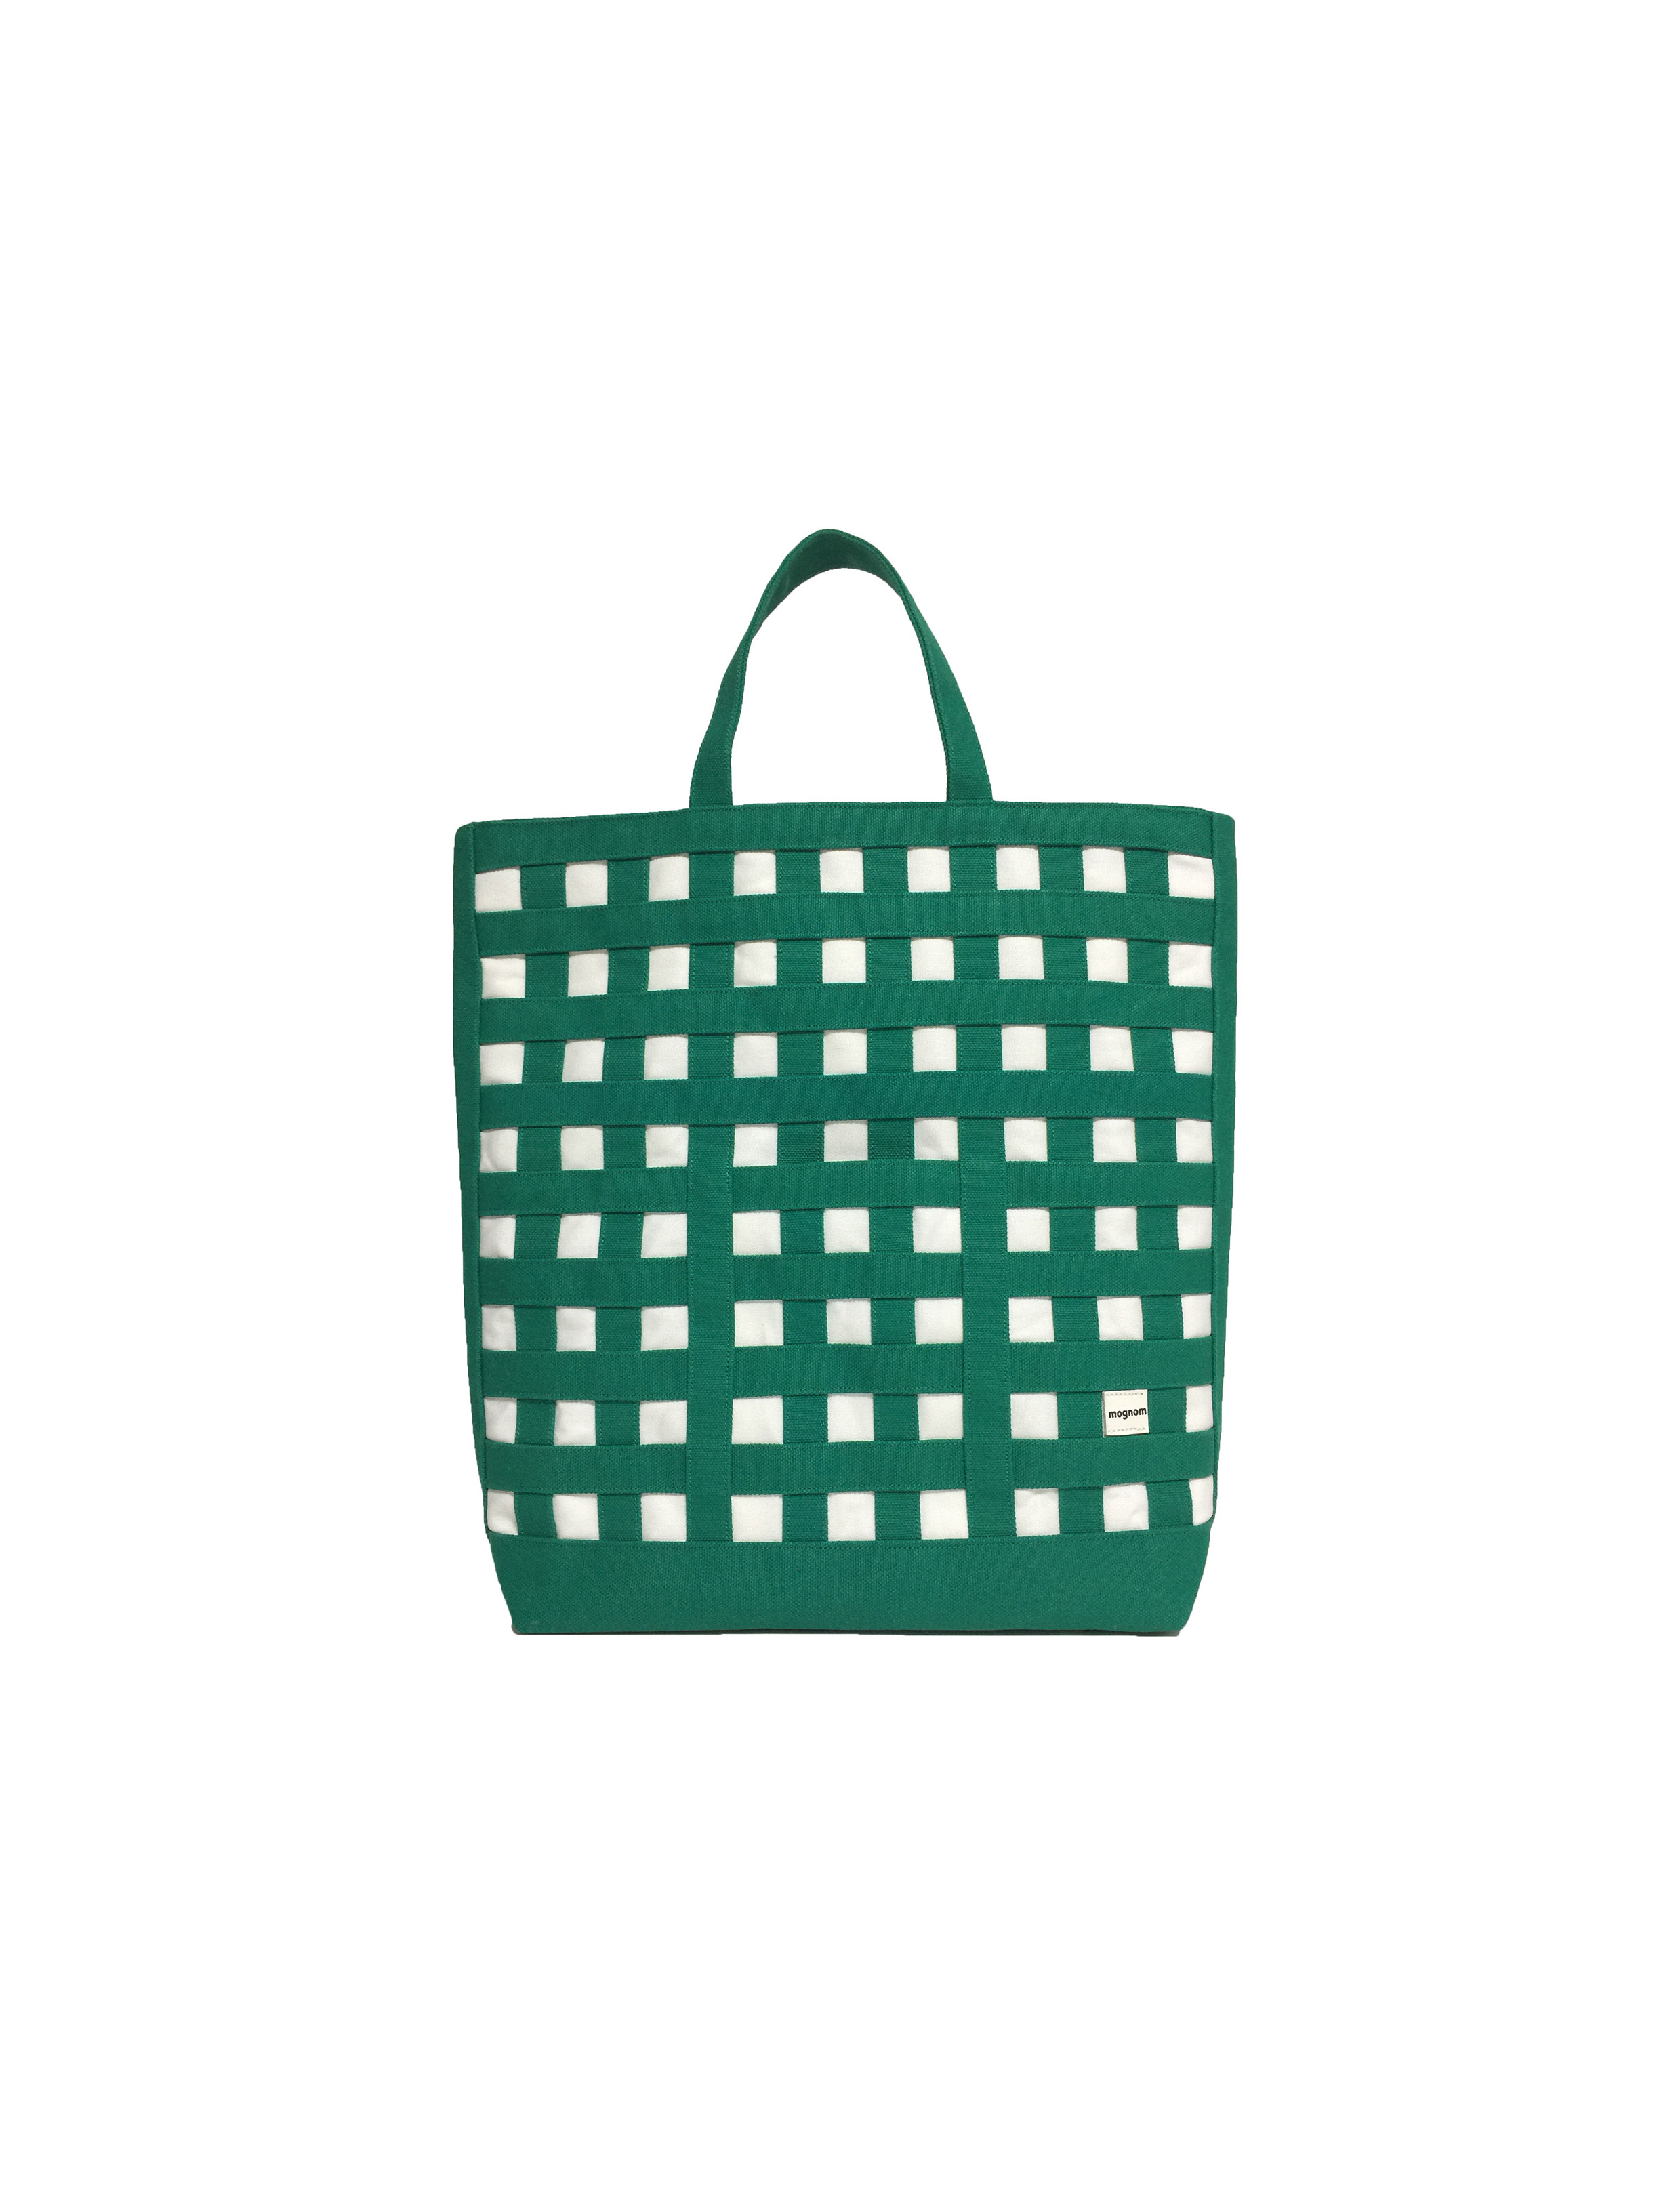 gingham tote ギンガムトート 20  グリーン